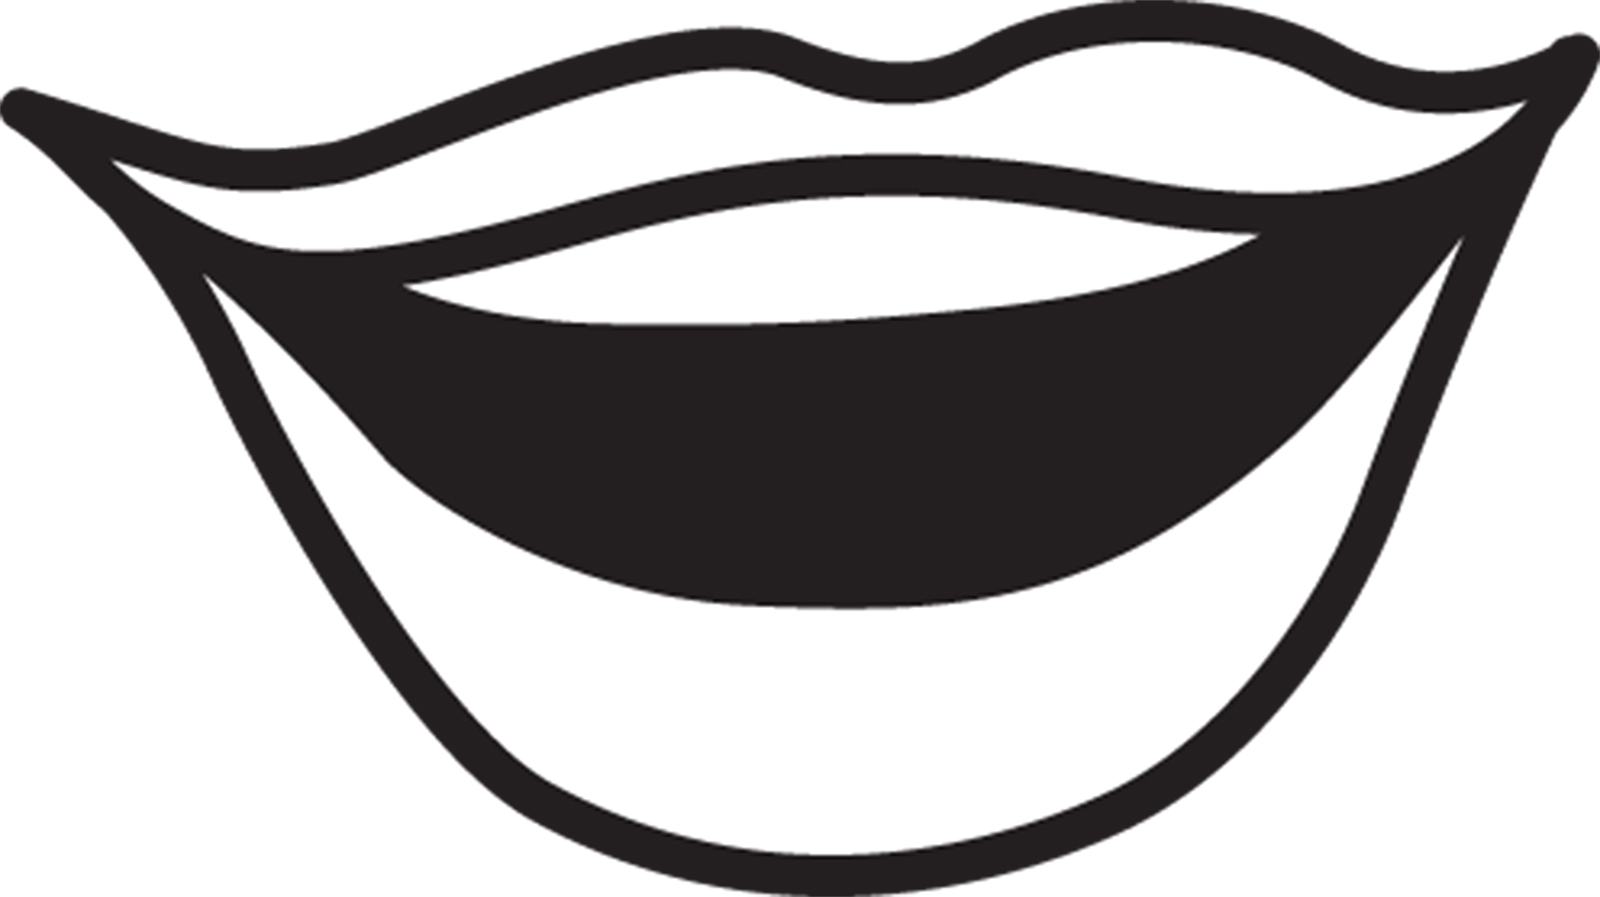 Mouth clipart different mouth. Download panda free images